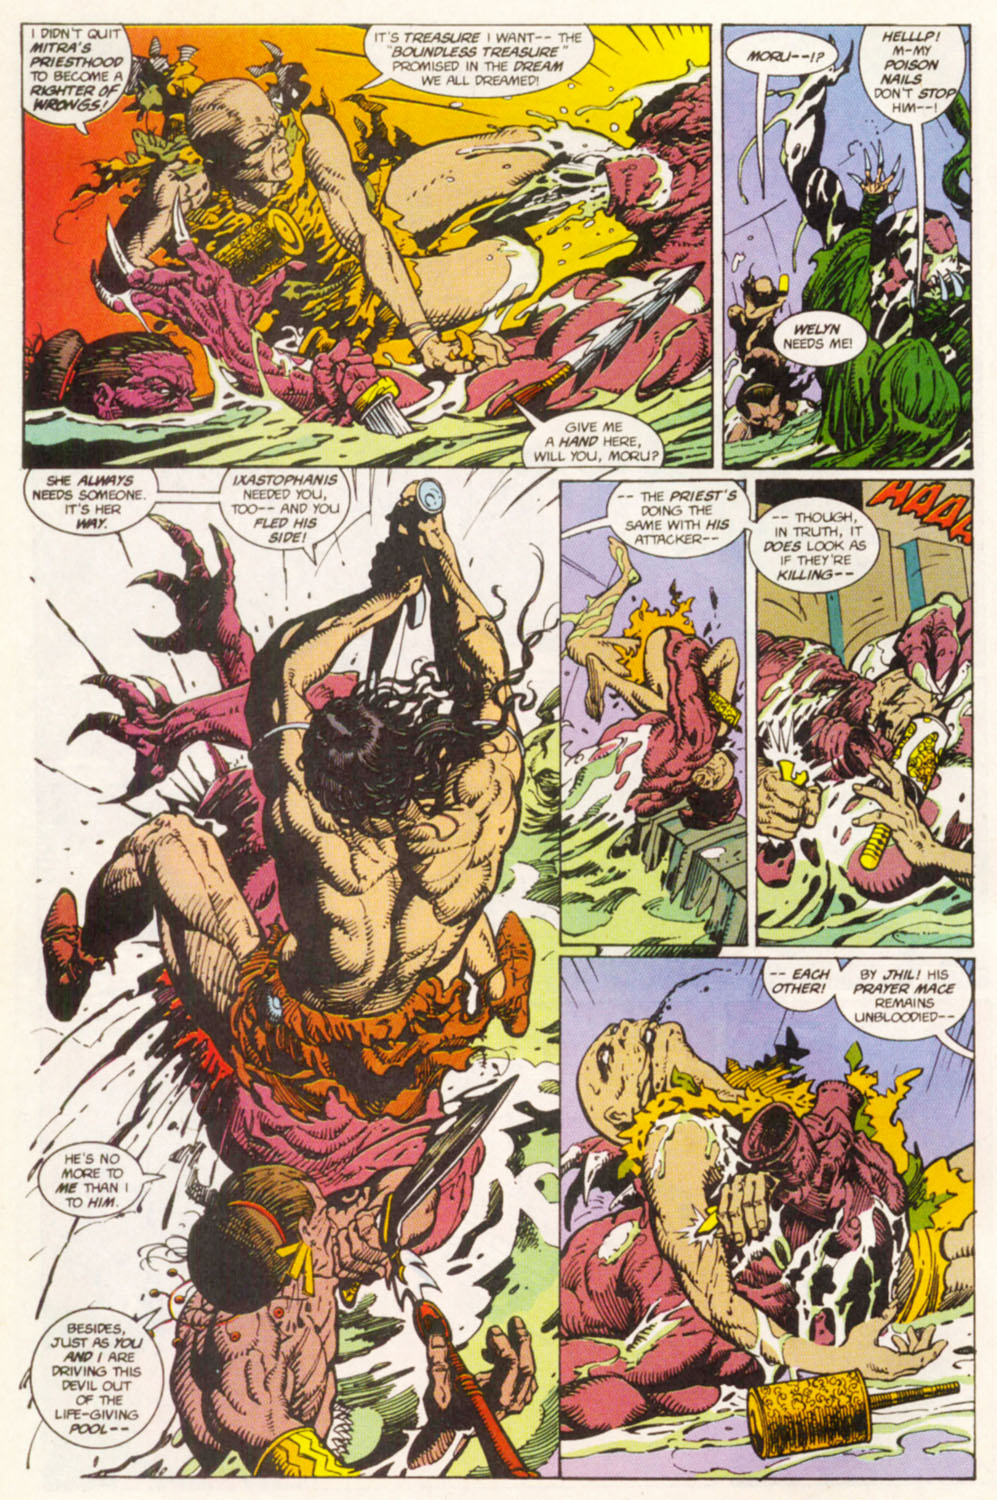 Read online Conan the Adventurer comic -  Issue #14 - 6